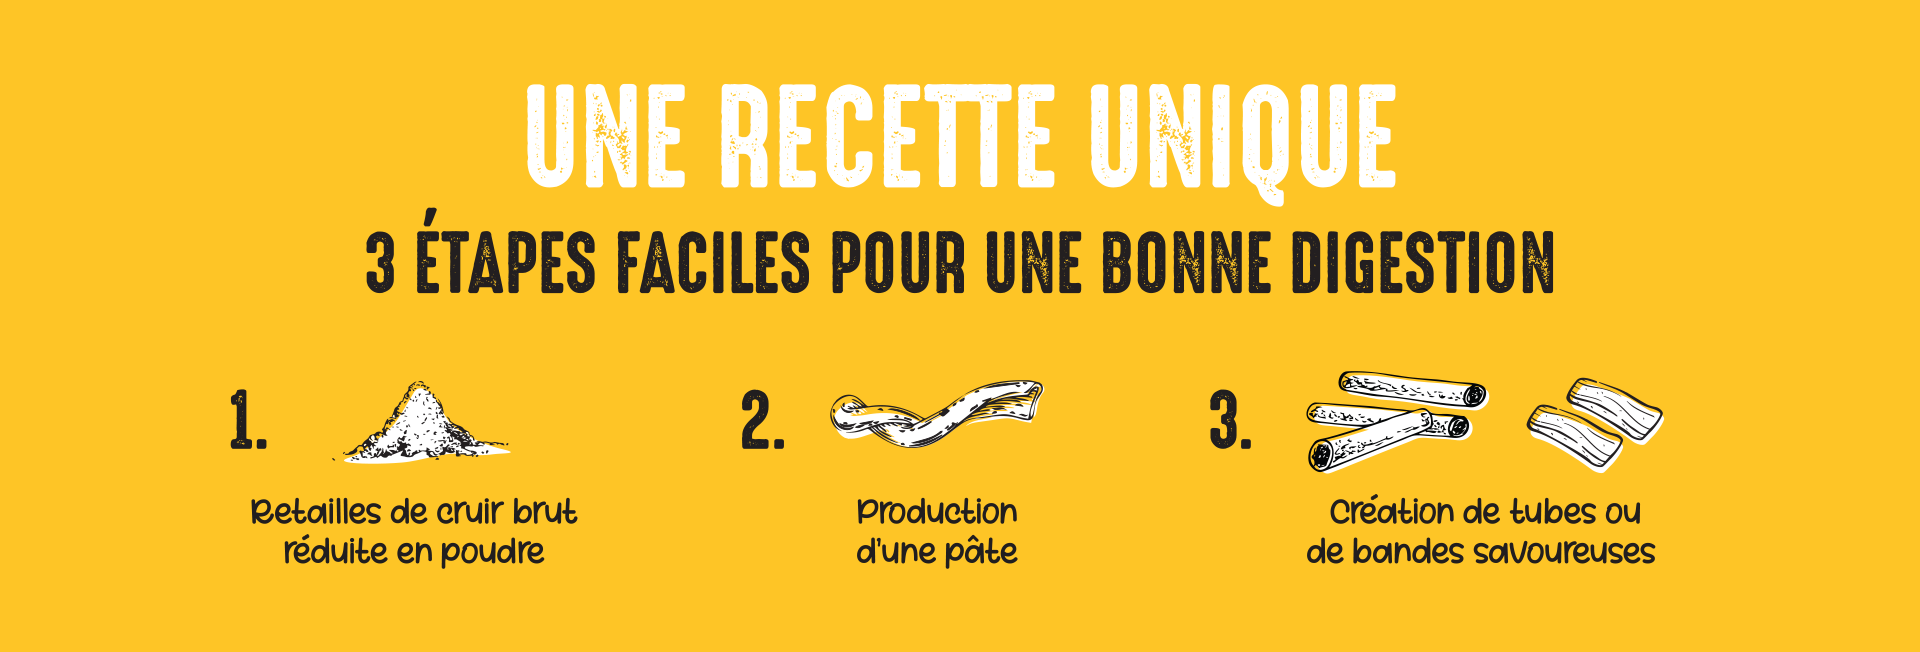 easy-digestion-tubes-for-dogs-french